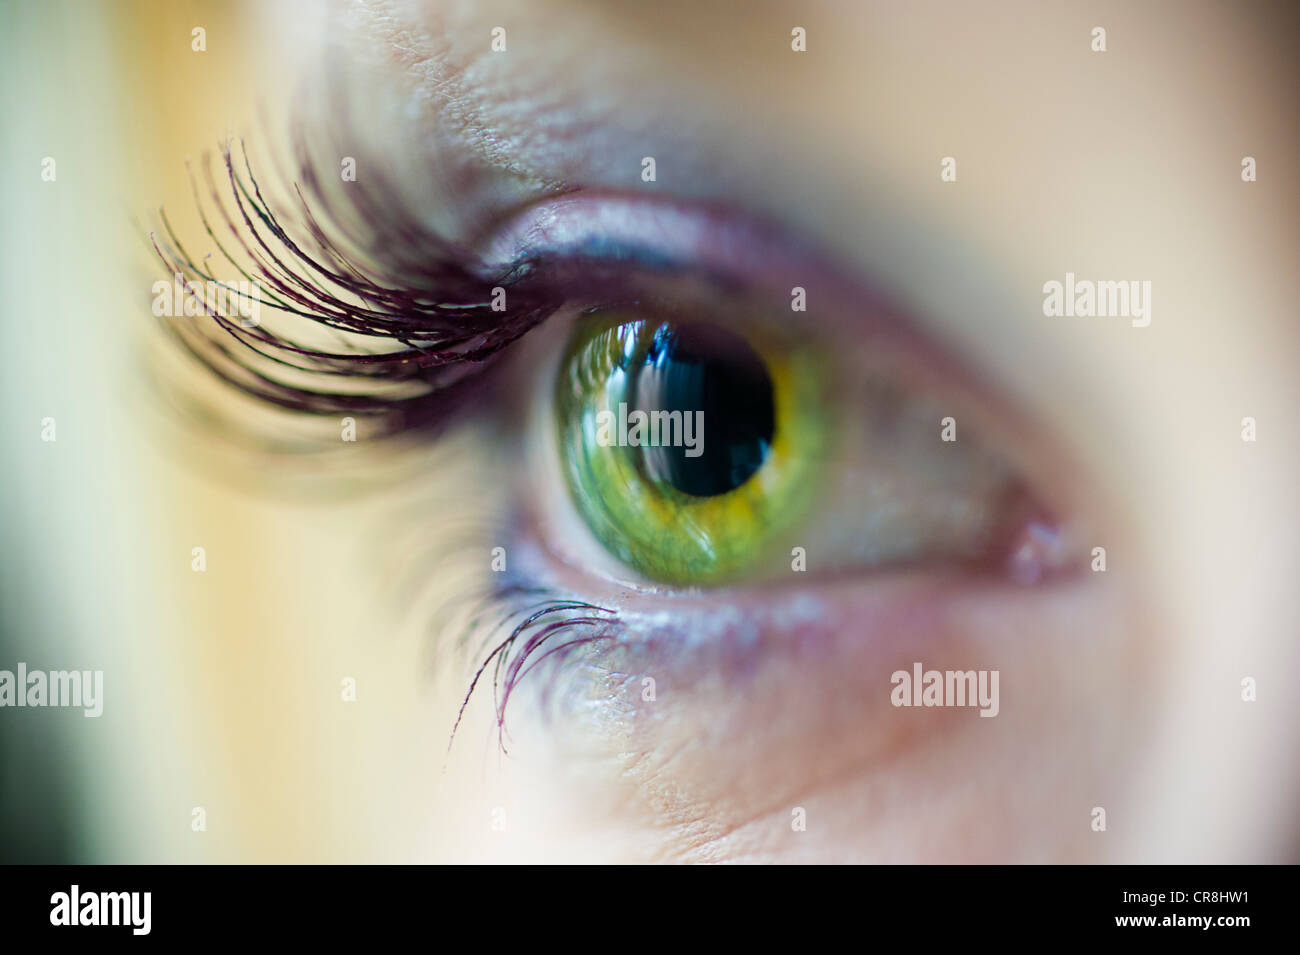 Green eye with long lashes - Stock Image